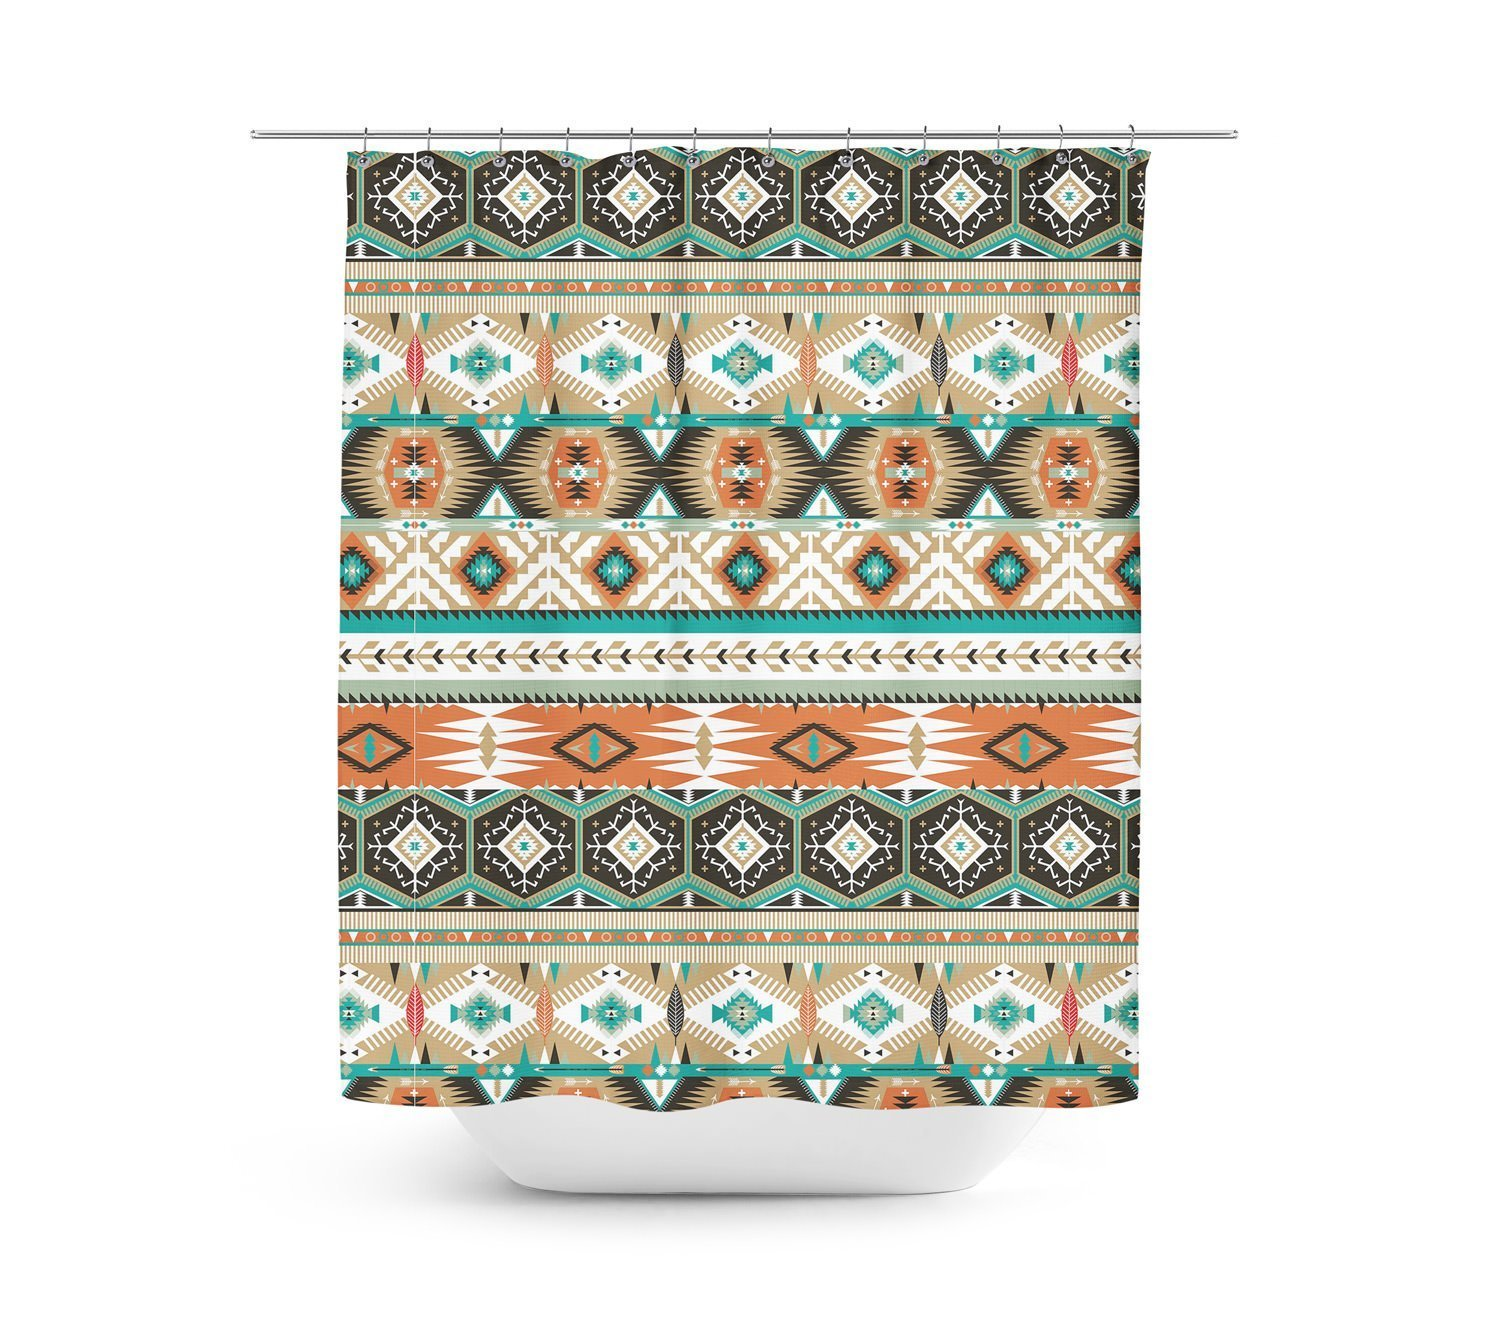 Earthy Aztec Tribal Geometric Shower Curtain   36x72 Stall   Unique In 4  Sizes For Any